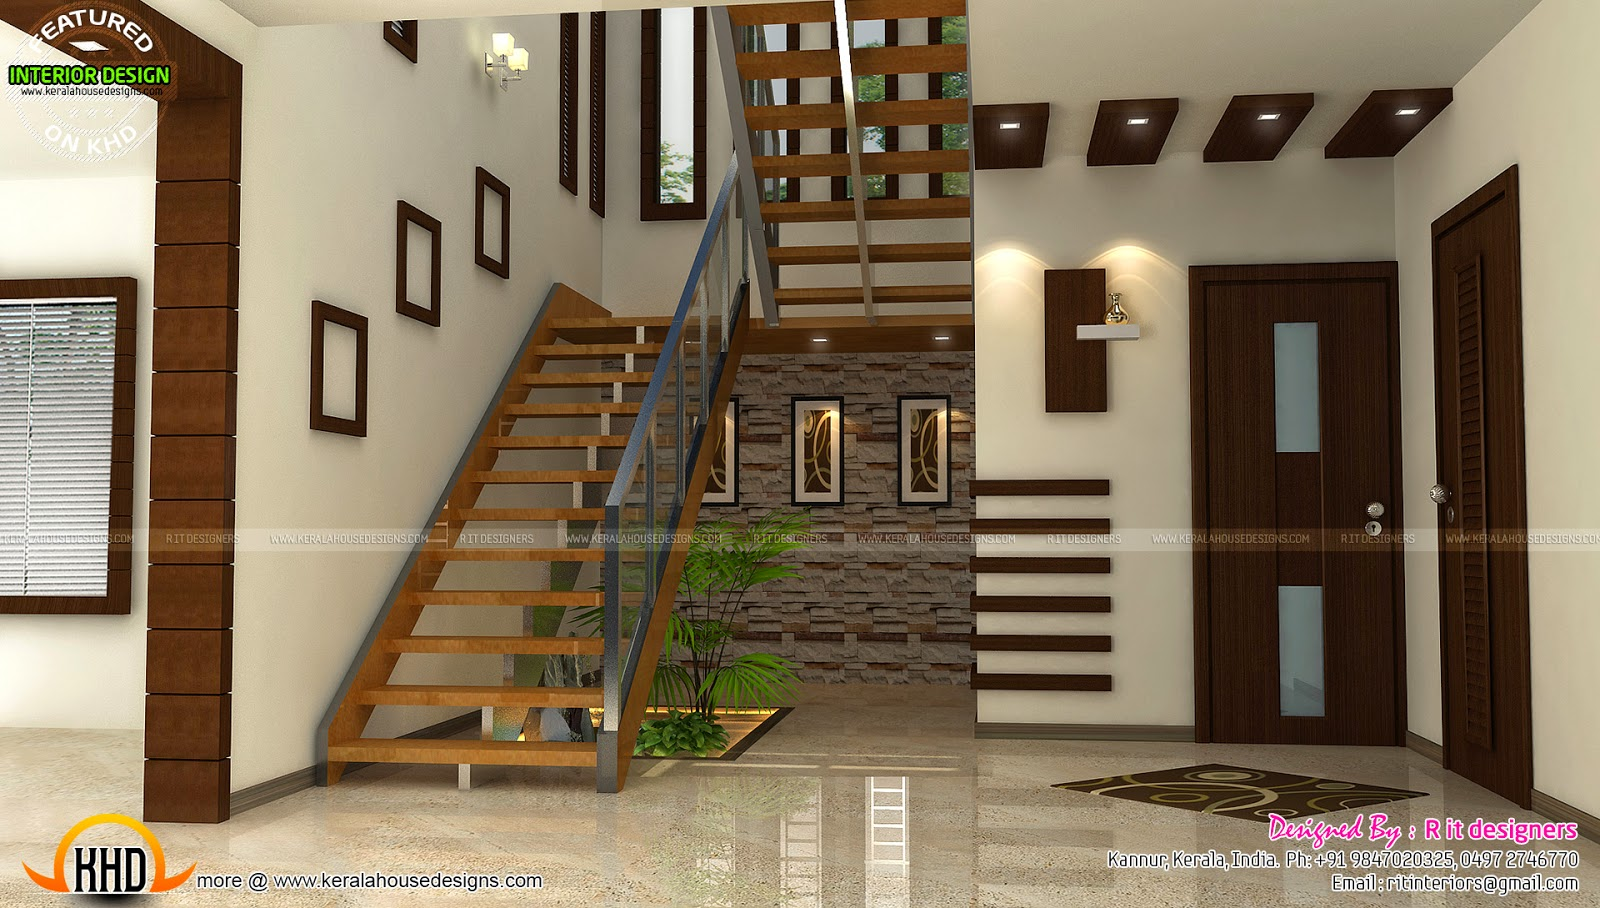 Staircase bedroom dining interiors kerala home design for House plans with interior photos